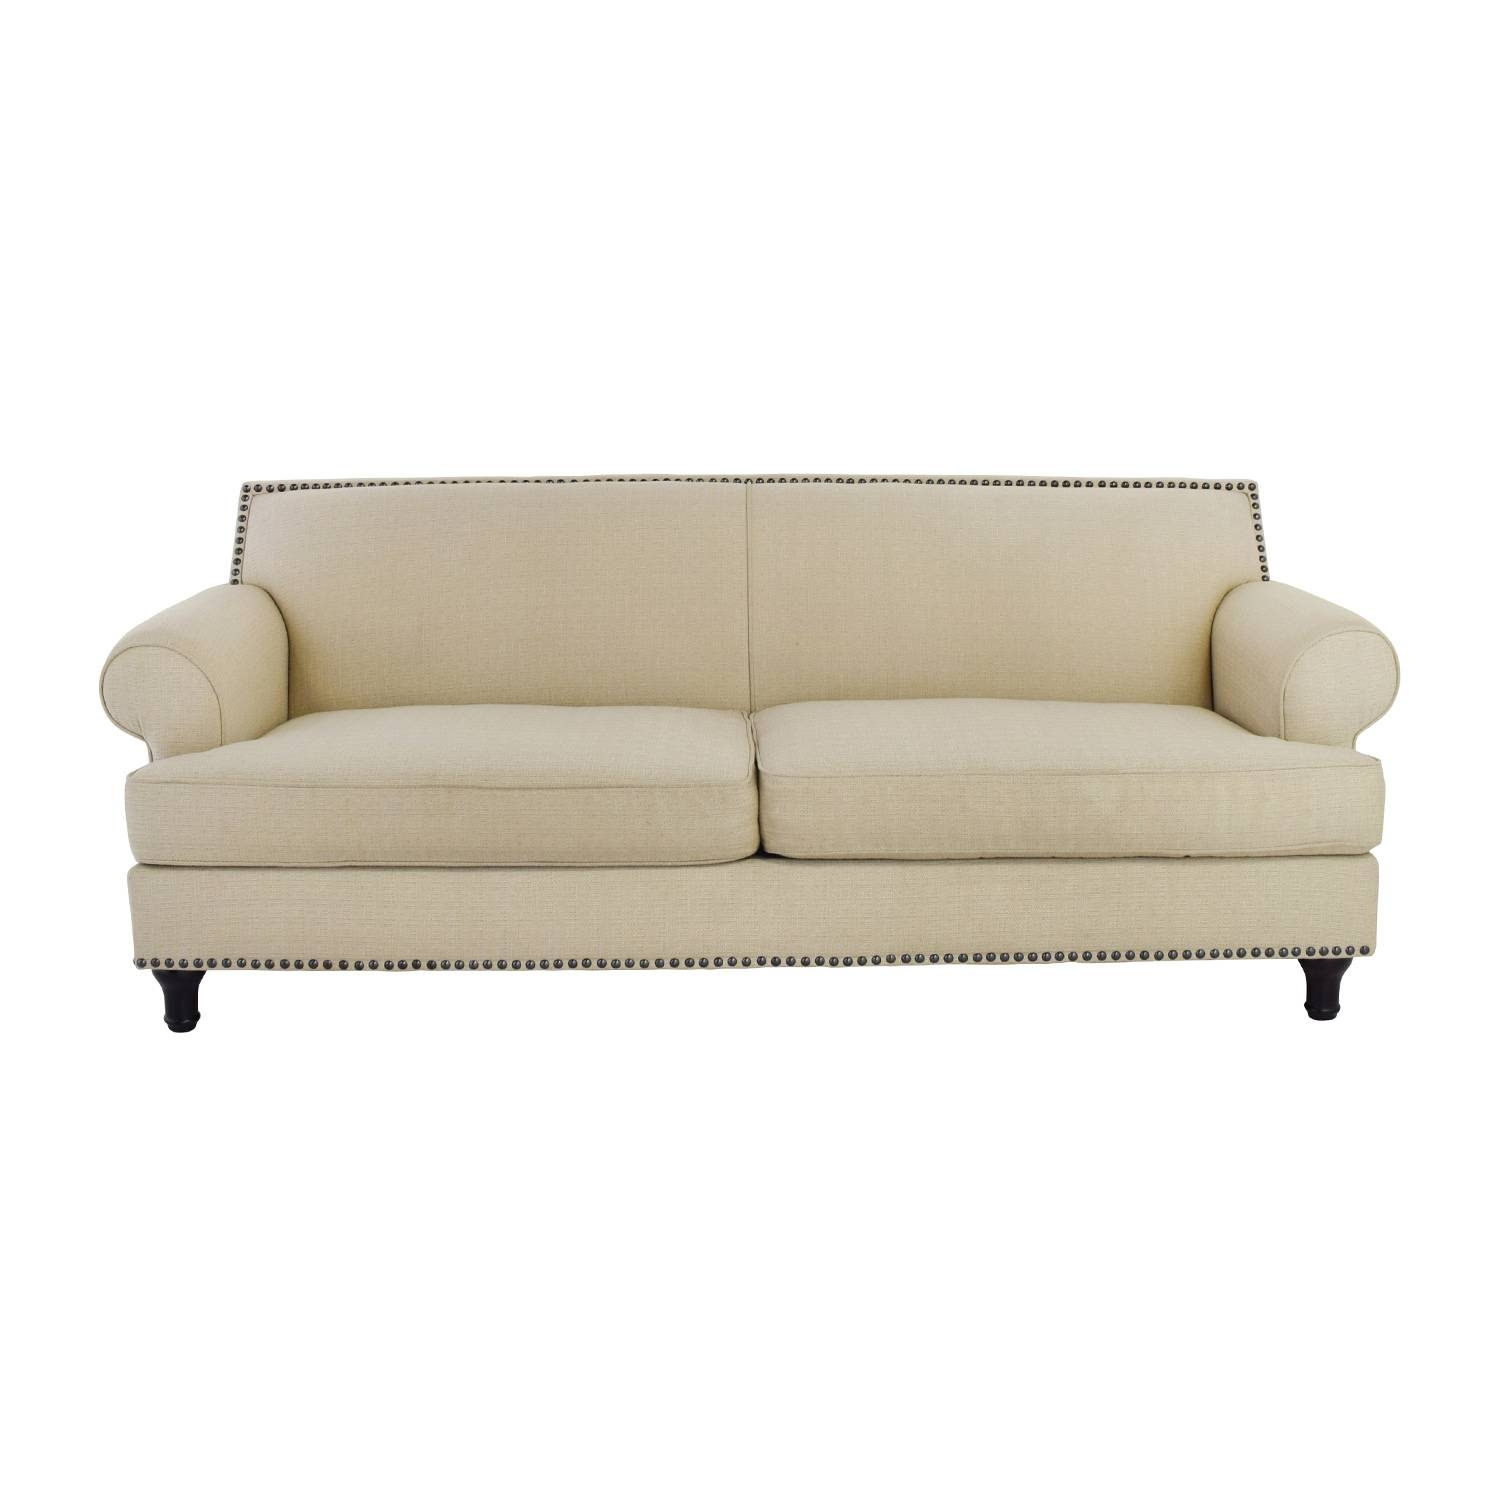 48% Off - Pier 1 Pier 1 Carmen Tan Couch With Studs / Sofas in Pier One Carmen Sofas (Image 5 of 15)